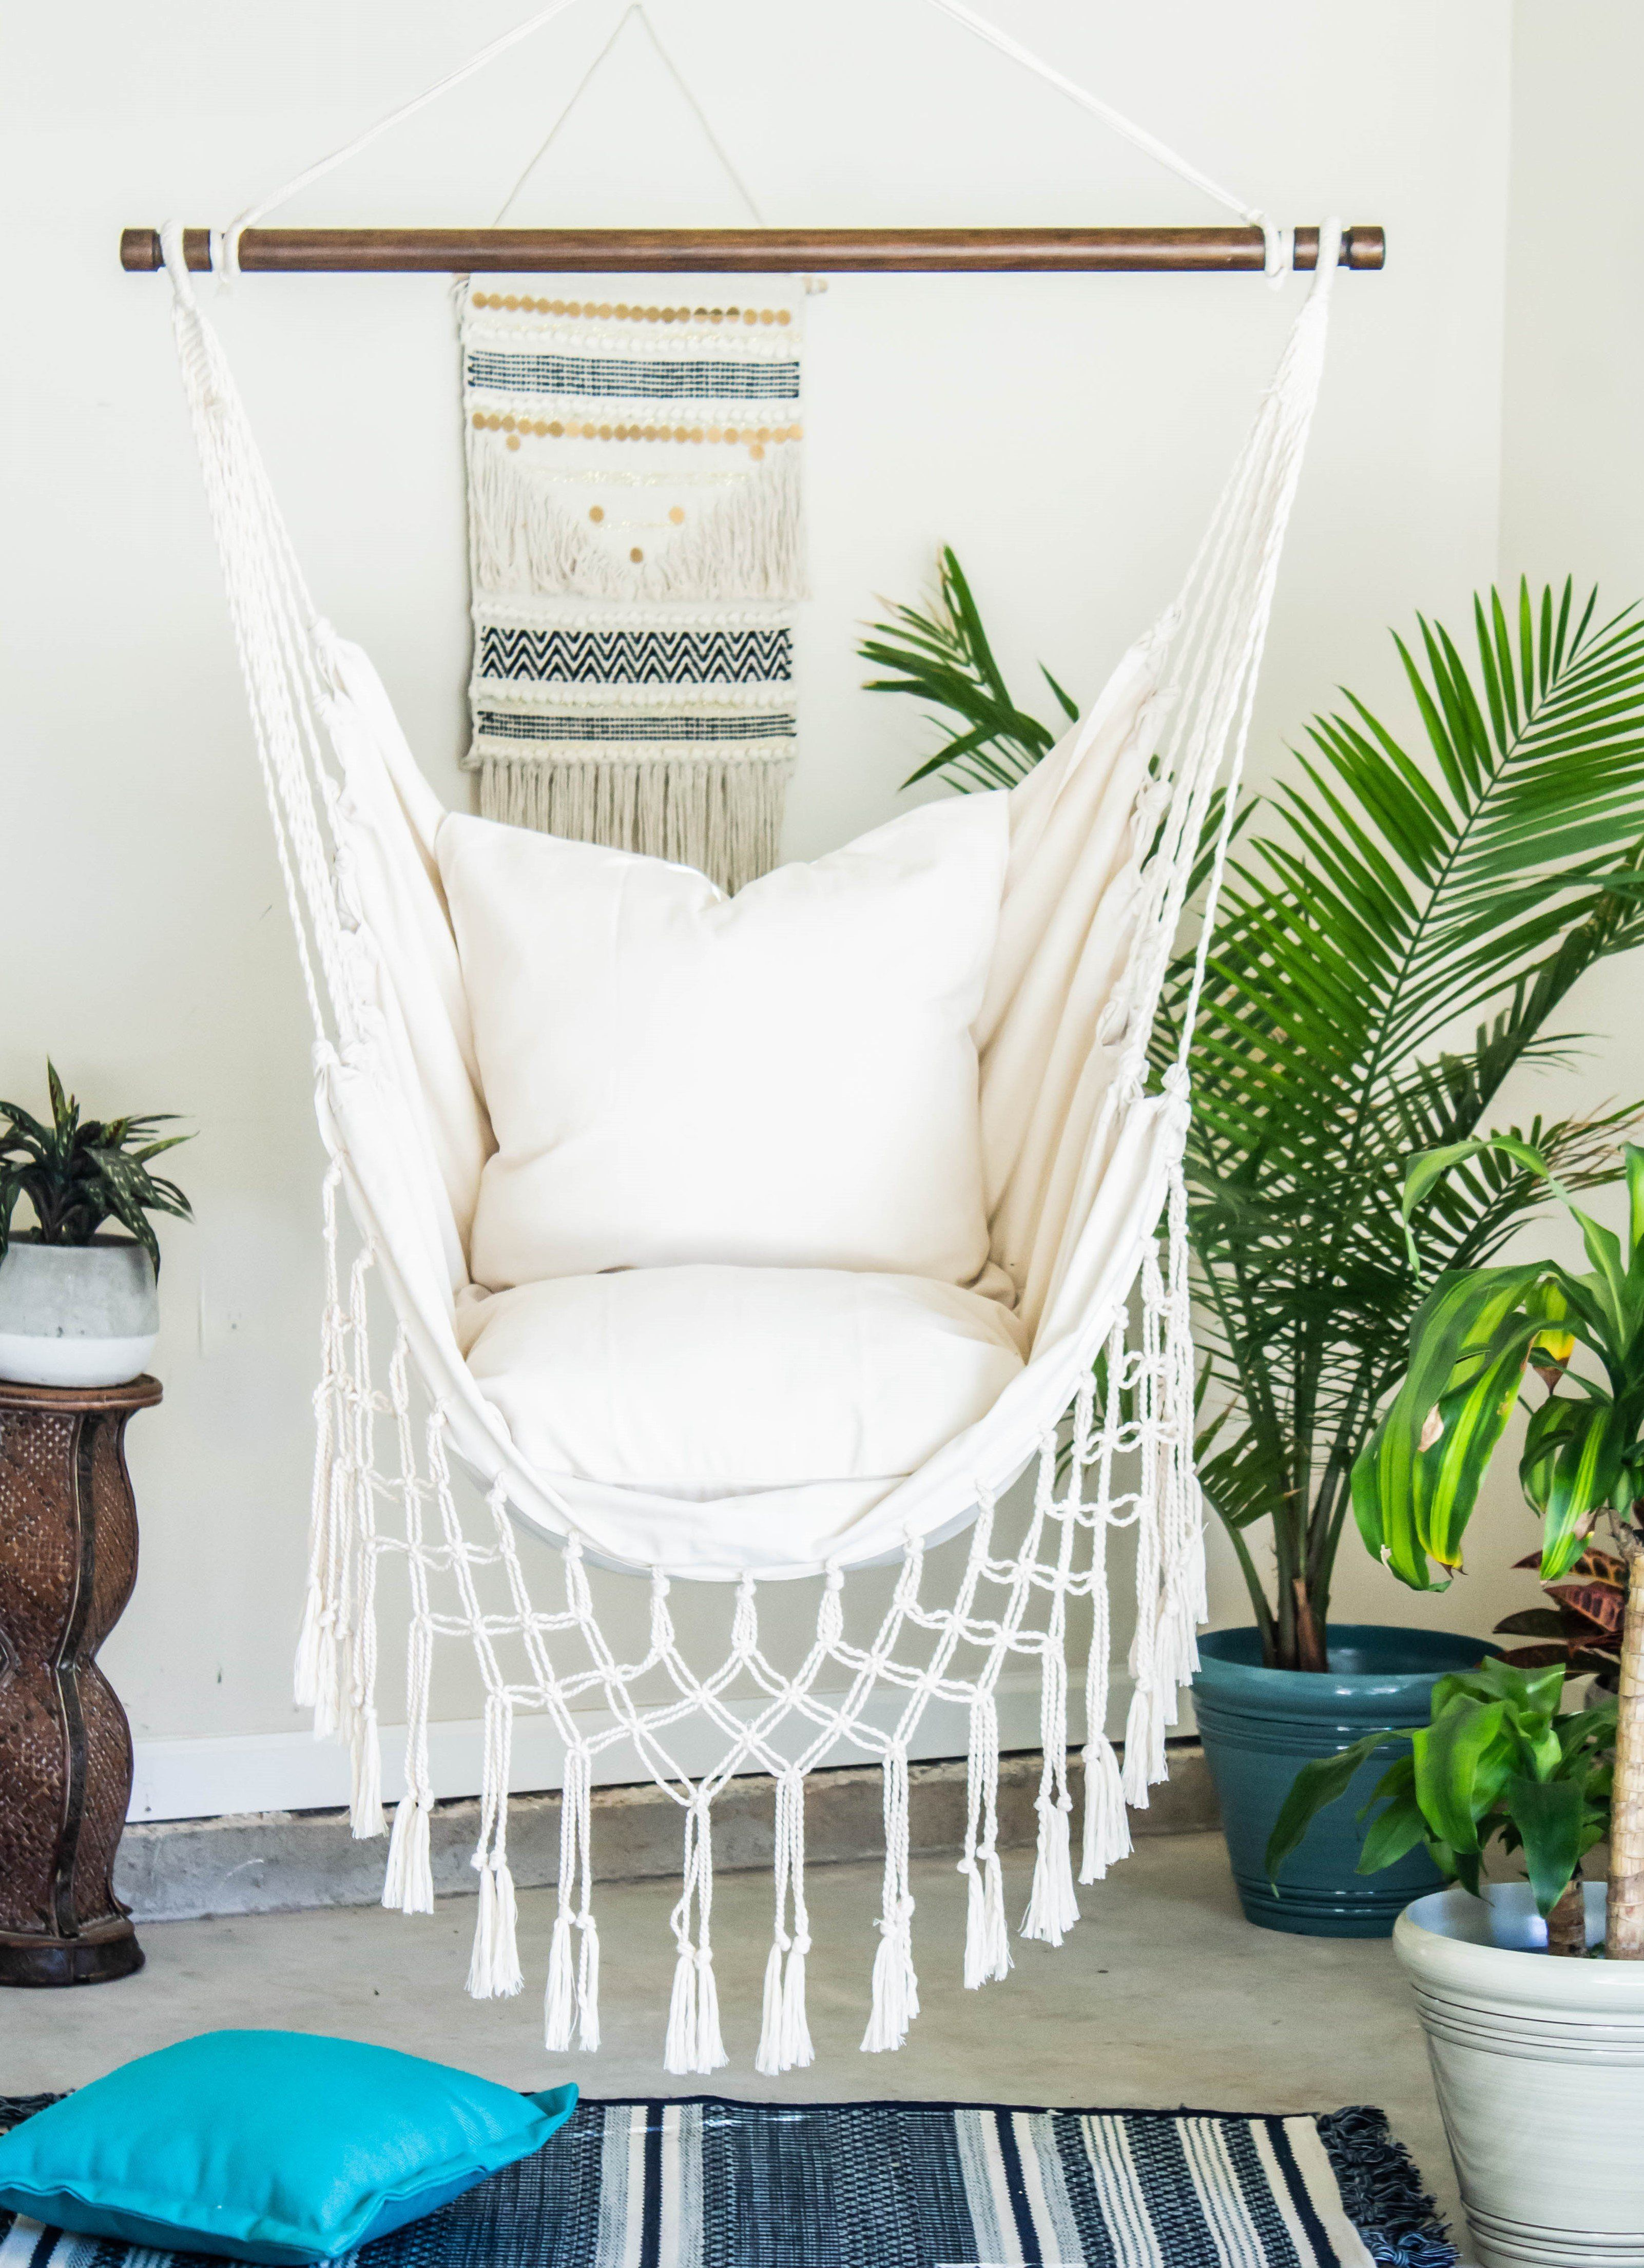 Natural Off White Macrame Hammock Chair + 2 Pillows Set in